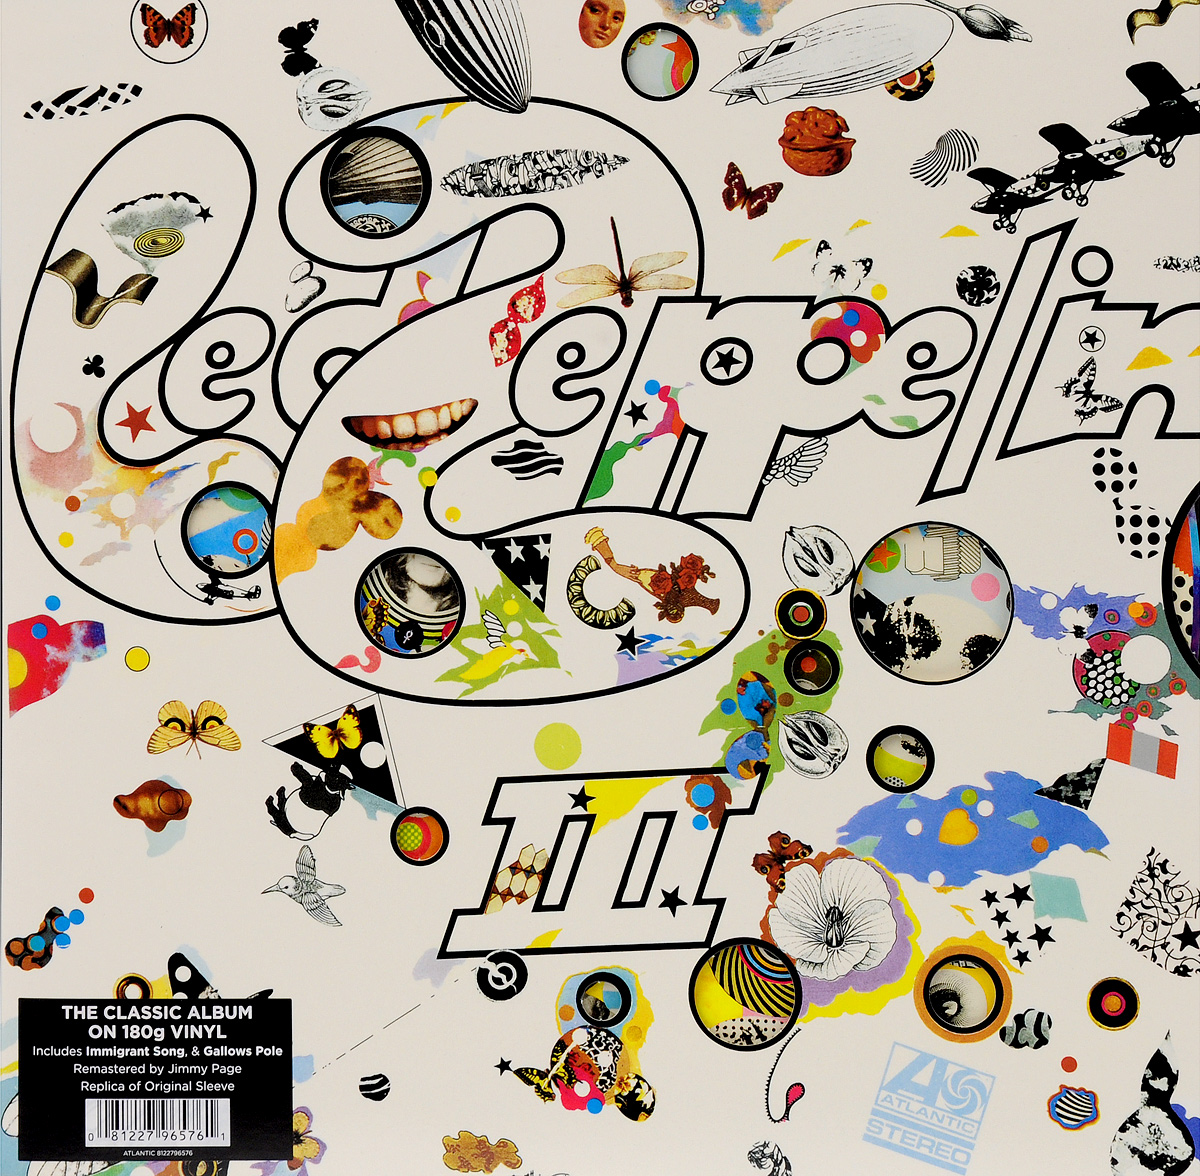 Led Zeppelin Led Zeppelin. Led Zeppelin III (LP) led zeppelin – led zeppelin iii deluxe edition 2 lp